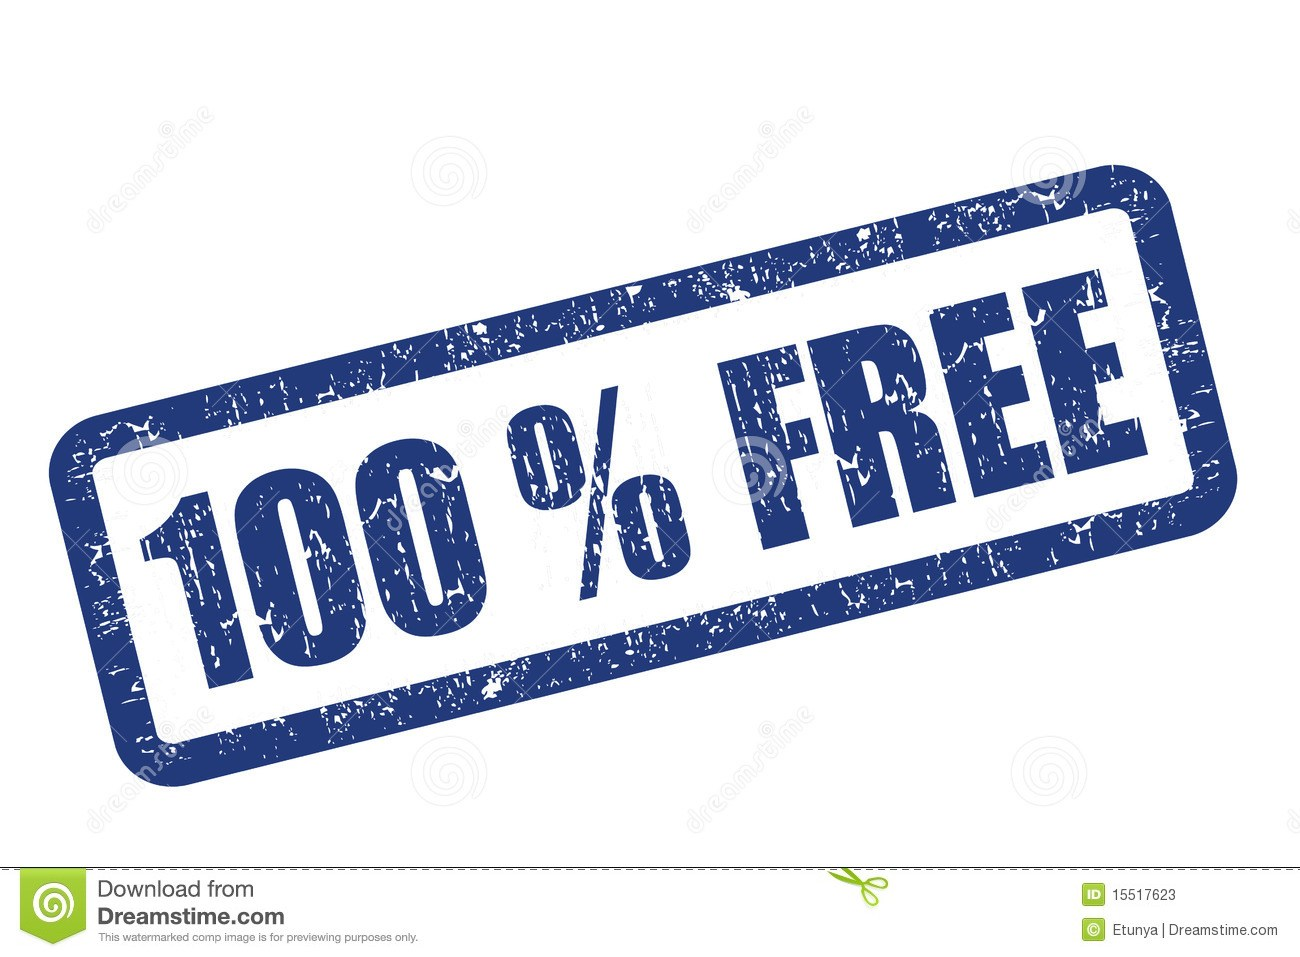 100 free clipart png free library 100 free clipart 3 » Clipart Portal png free library